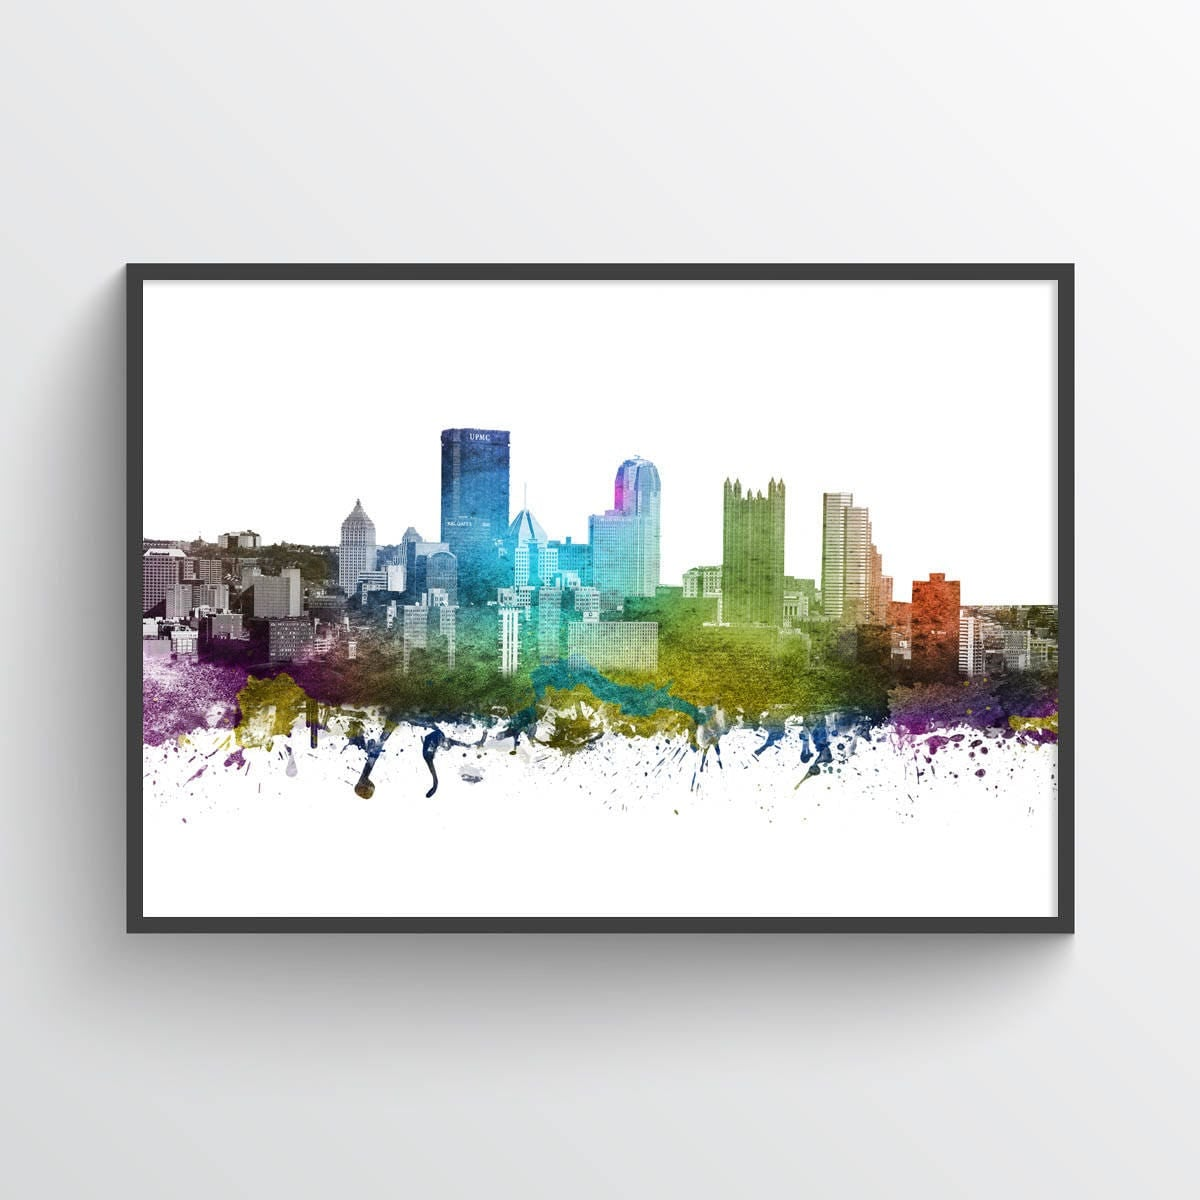 Color art printing anchorage - Details Beautiful Pittsburgh Pennsylvania Skyline In Color Poster Print